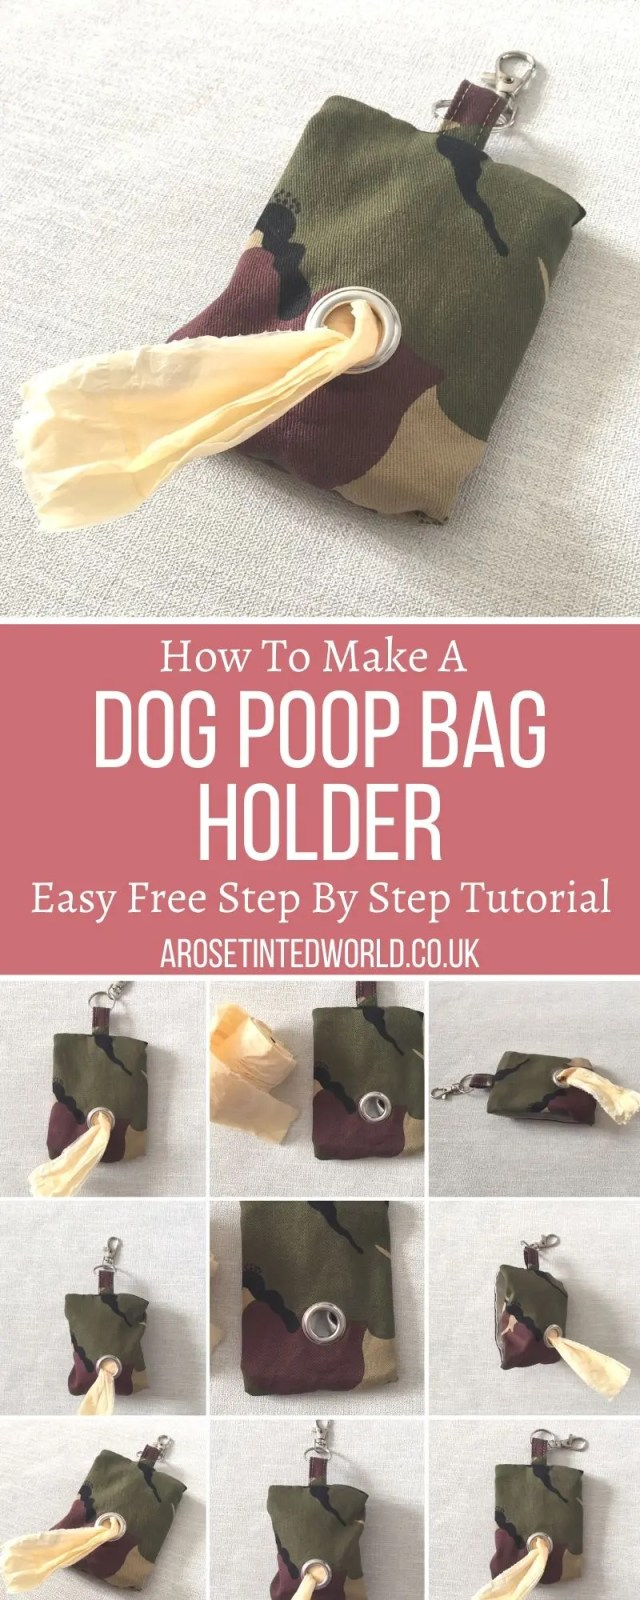 How to Make A Dog Poop Bag Holder - ever forget your dog poo bags? Or lose them in your bag or pockets? Then use this easy step by step sewing tutorial to make a convenient, useful and handy dispenser. Perfect dog walking and dog lovers gift or present accessory. #sewing #dogpoopbagholder #dogwalking #giftsfordogowners #dogownergifts #dogaccessory #dogs